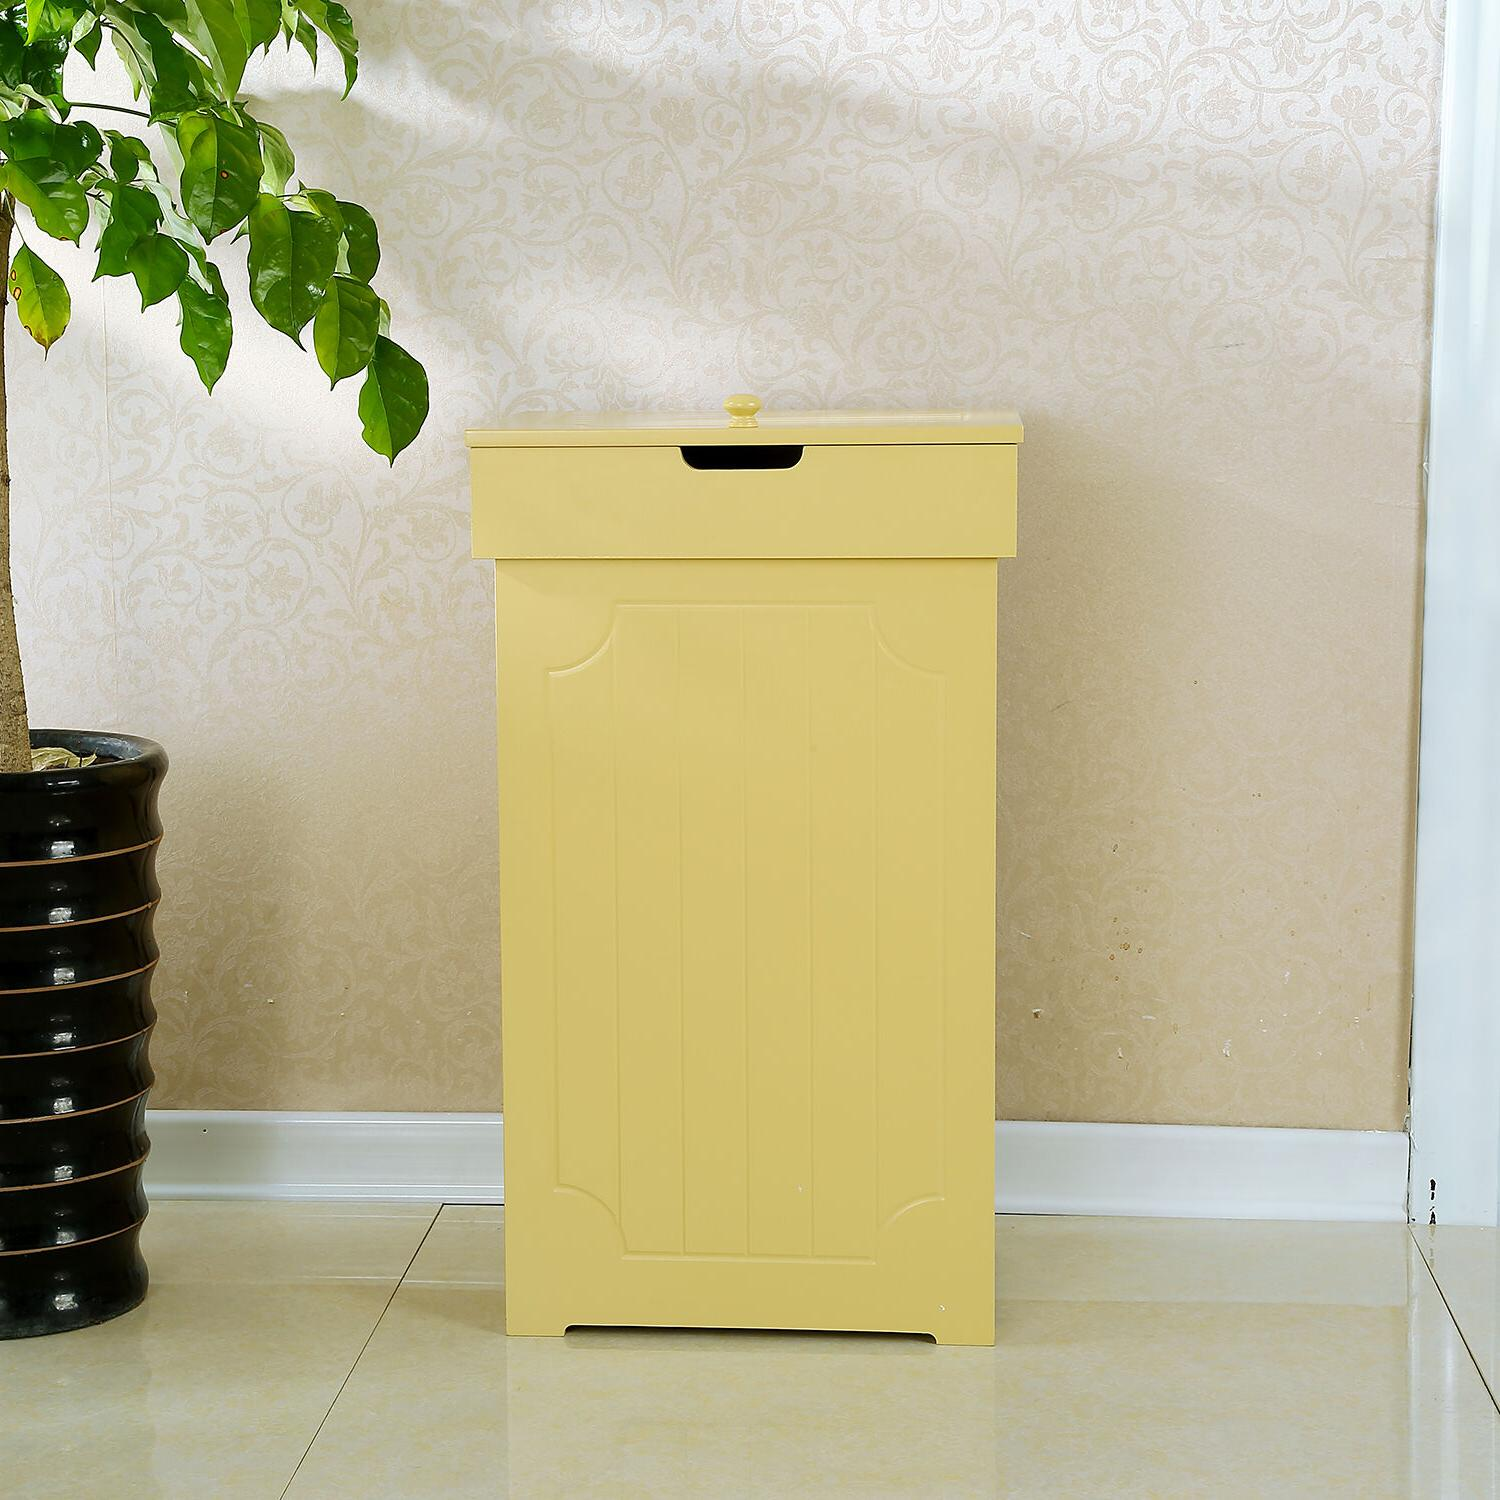 Trash Gallon Recycling Cans Waste